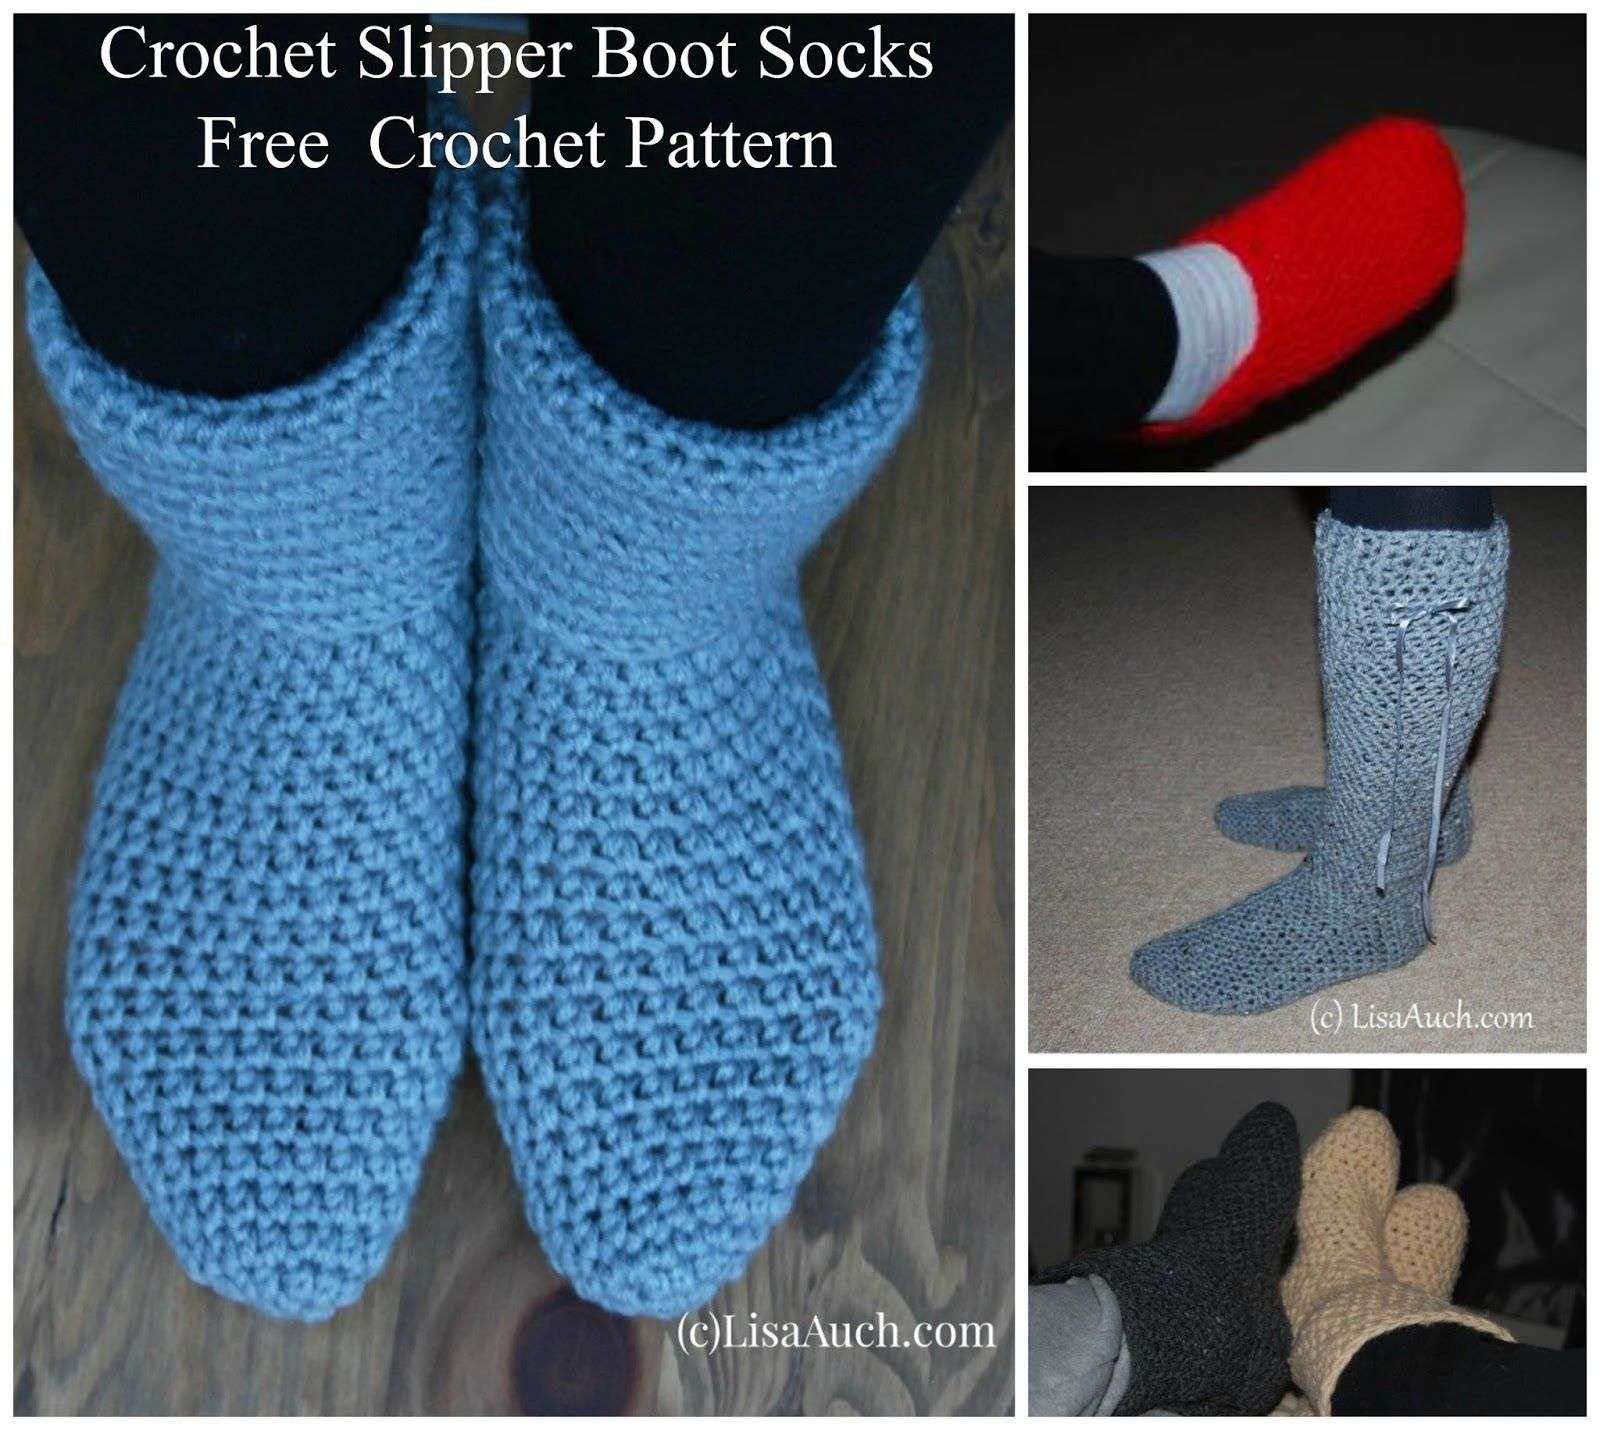 Easy free crochet slipper boot pattern free crochet slipper boot easy free crochet slipper boot pattern free crochet slipper boot pattern men woman bankloansurffo Choice Image